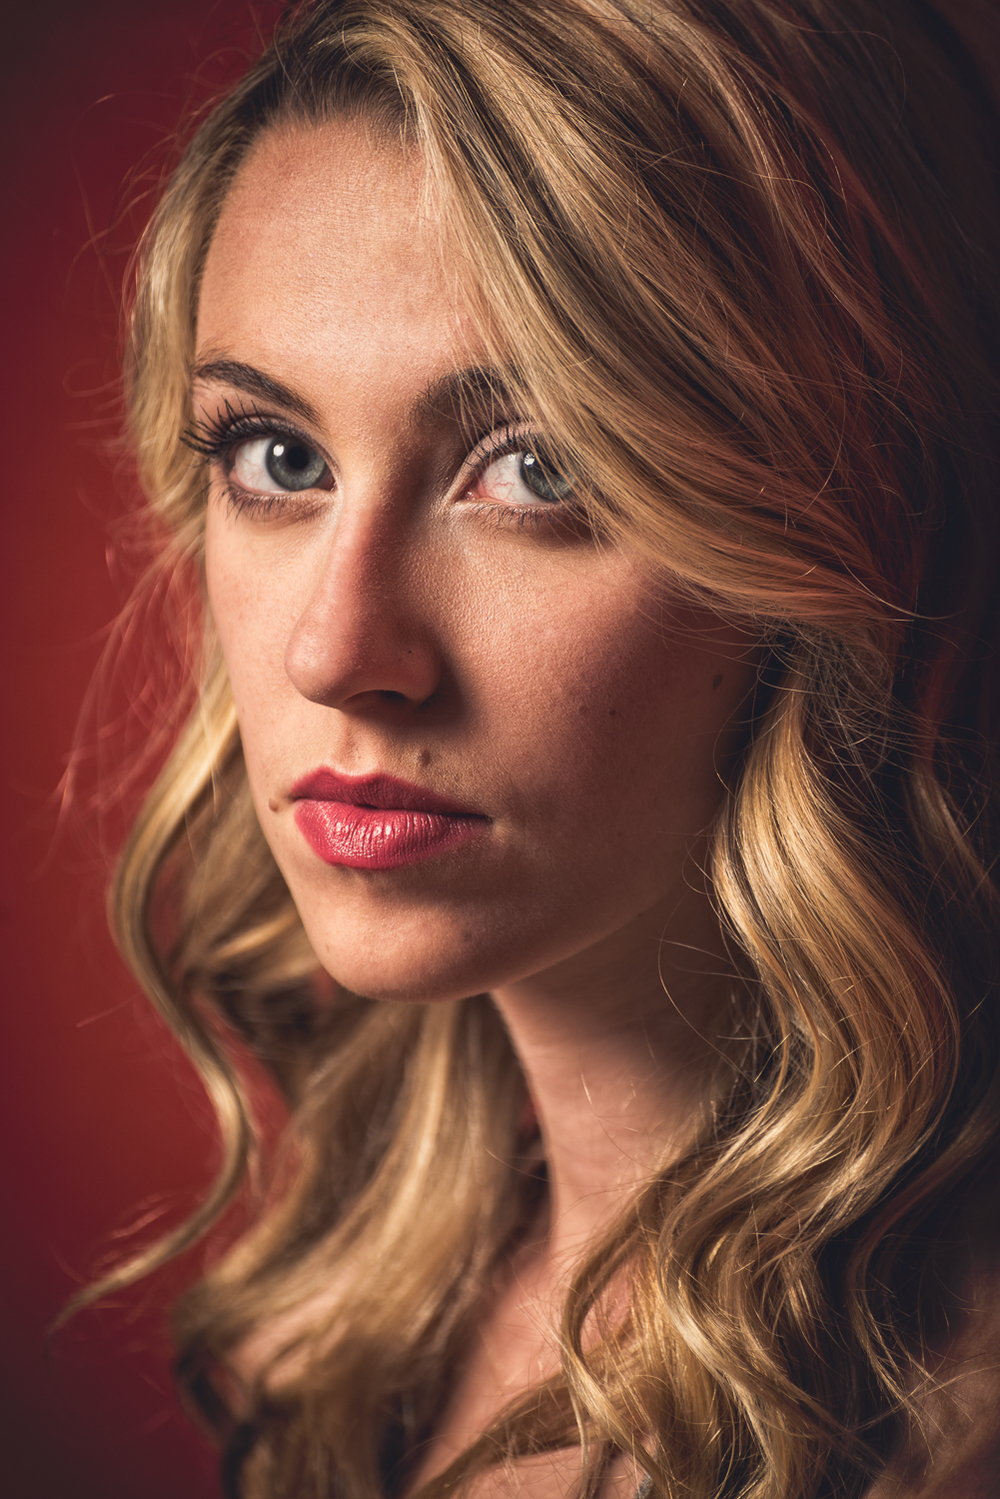 Hamilton Toronto Portrait Photographer - Female  Model Headshot by Marek Michalek.jpg